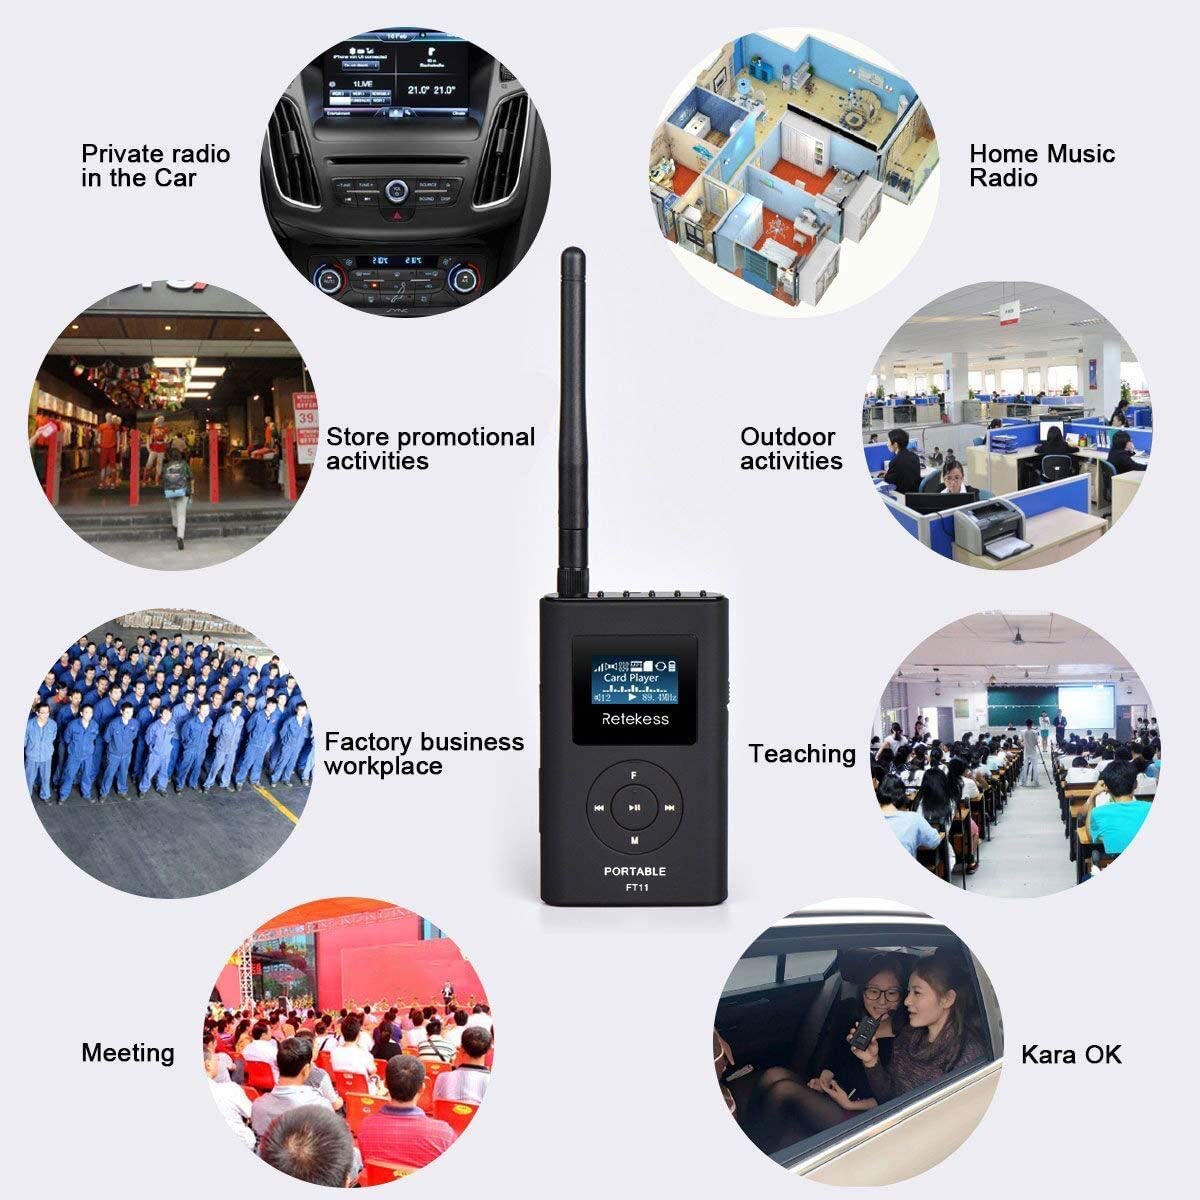 Retekess FT11 0.3W Portable FM Transmitter,Mini Radio Stereo Station,Support TF Card and AUX Input,2000mAh Rechargeable FM Broadcast Transmitter for Drive-in Church School Tour Guide Home Outdoor: Musical Instruments